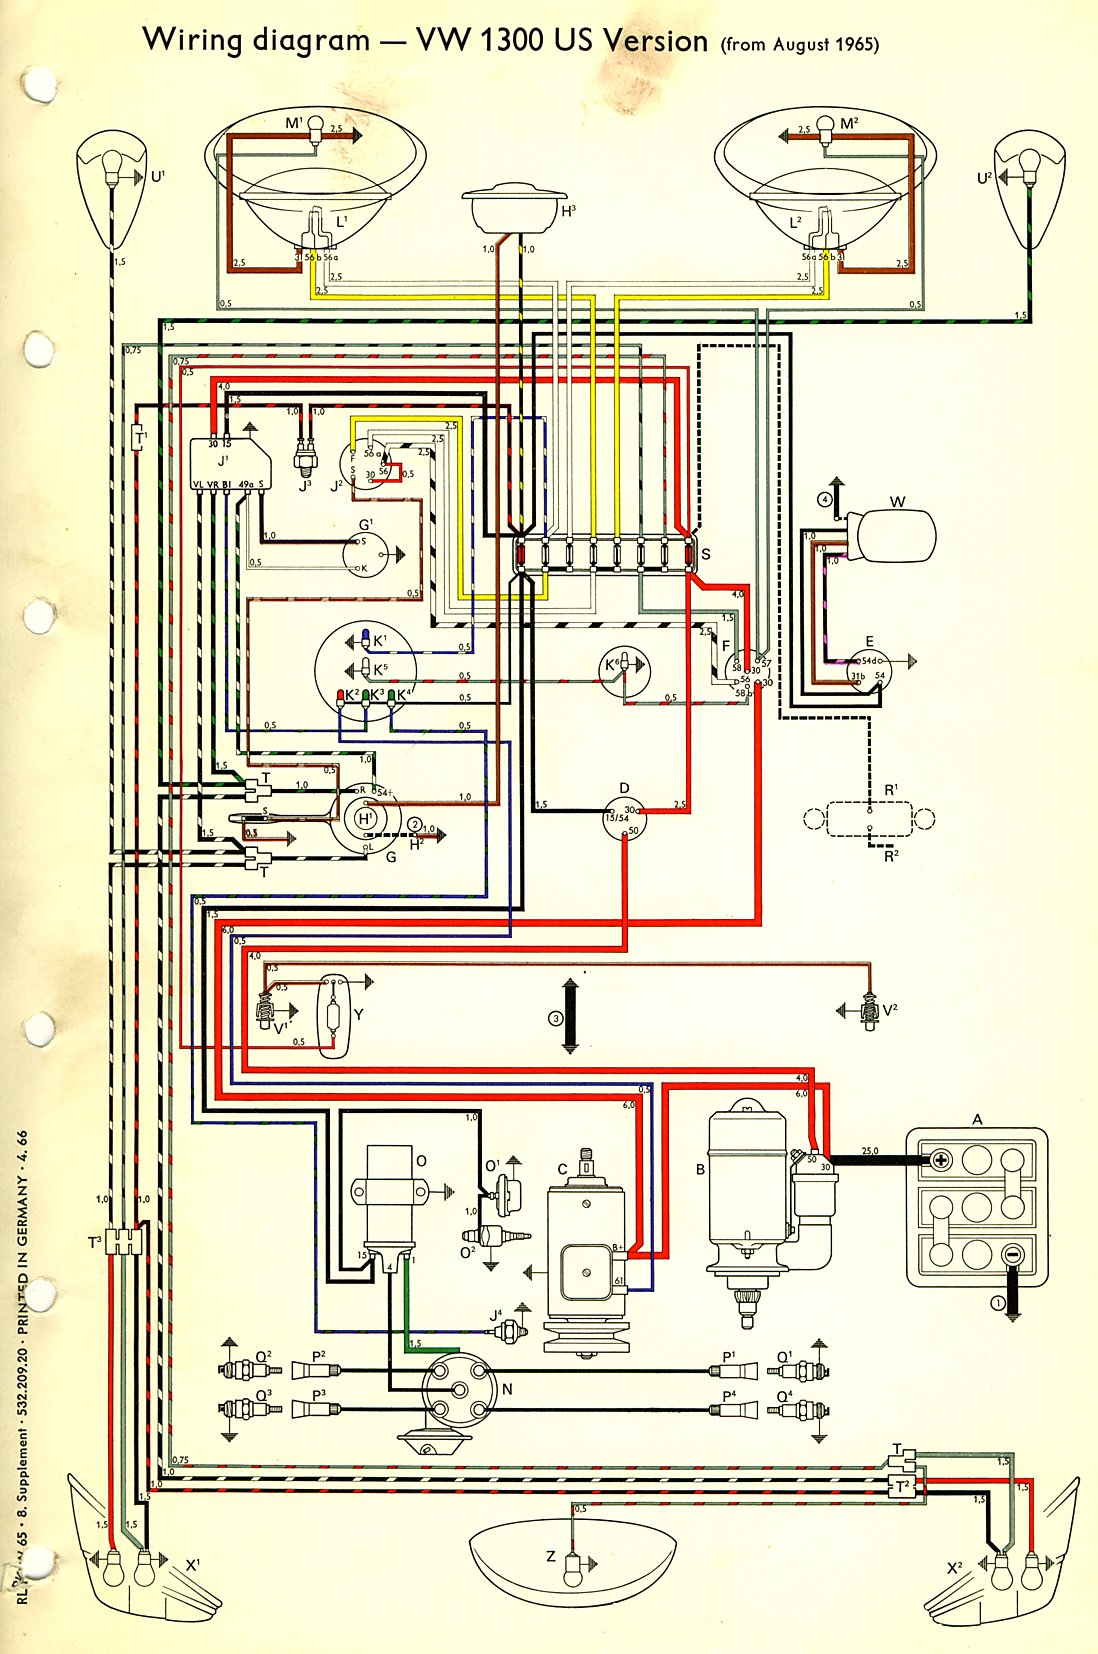 hight resolution of air cooled vw wire diagram wiring diagram schema thesamba com type 1 wiring diagrams air cooled